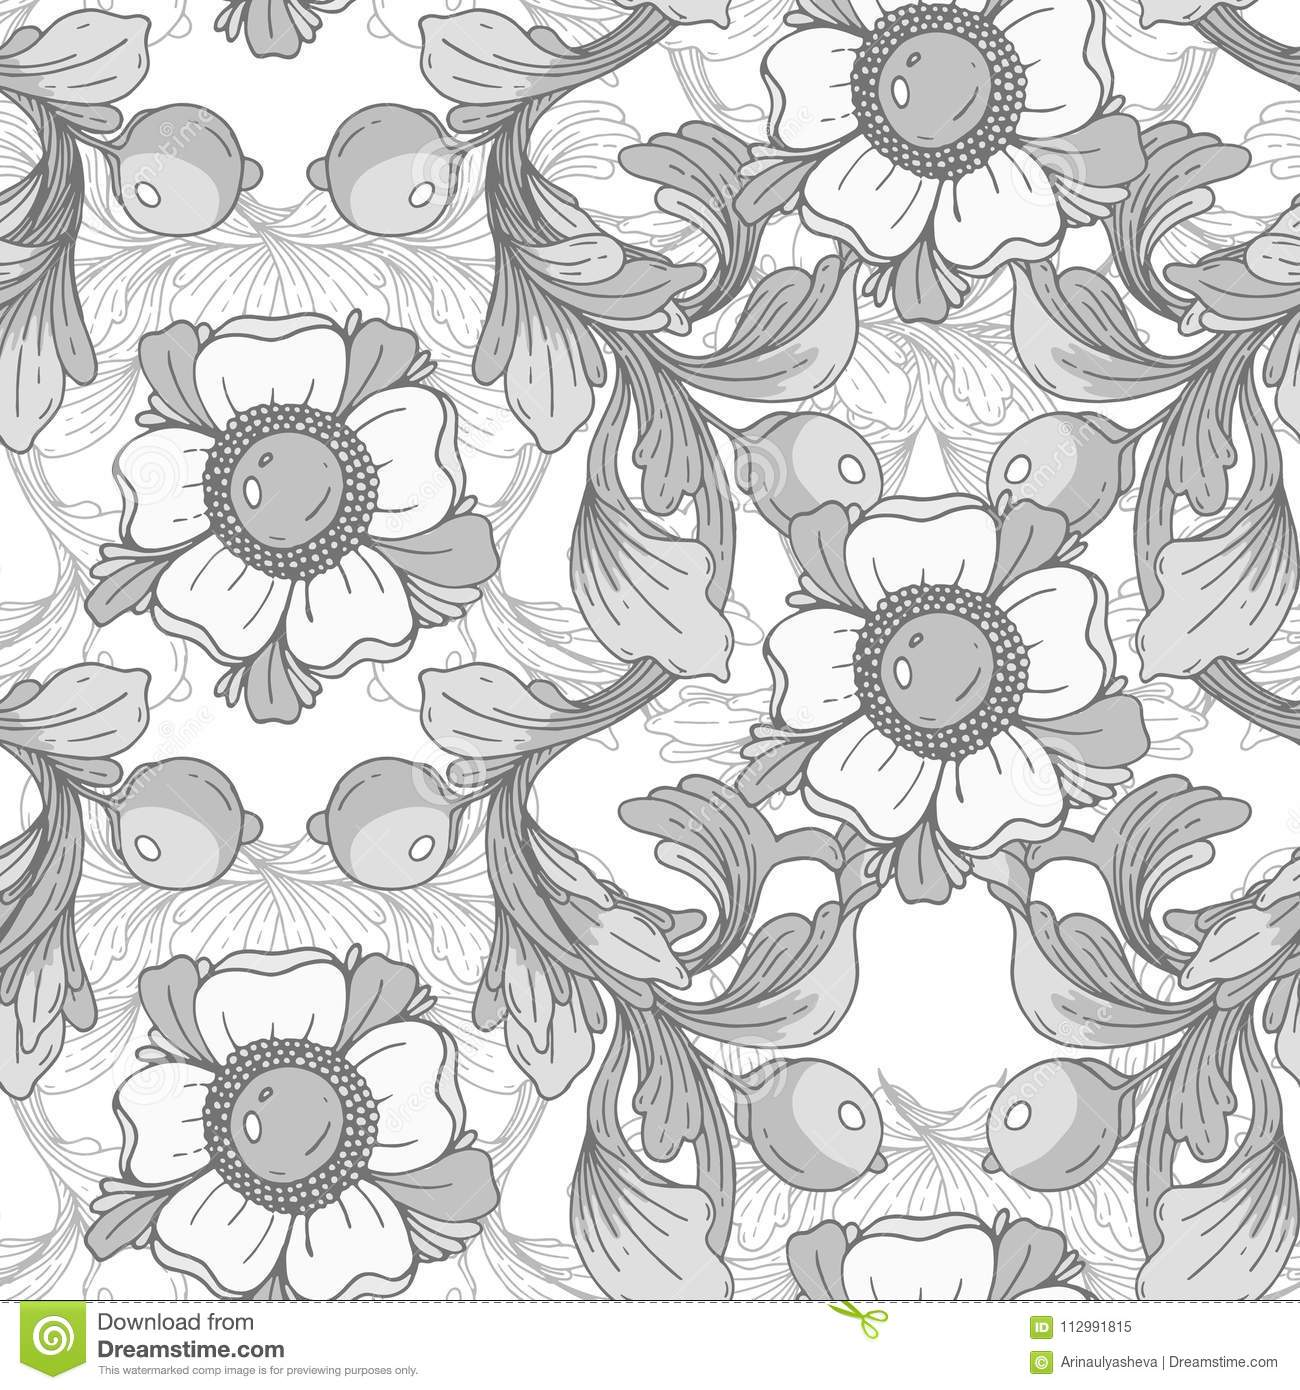 Vector seamless background. Beautiful gray fantastic floral border ornament delicate.